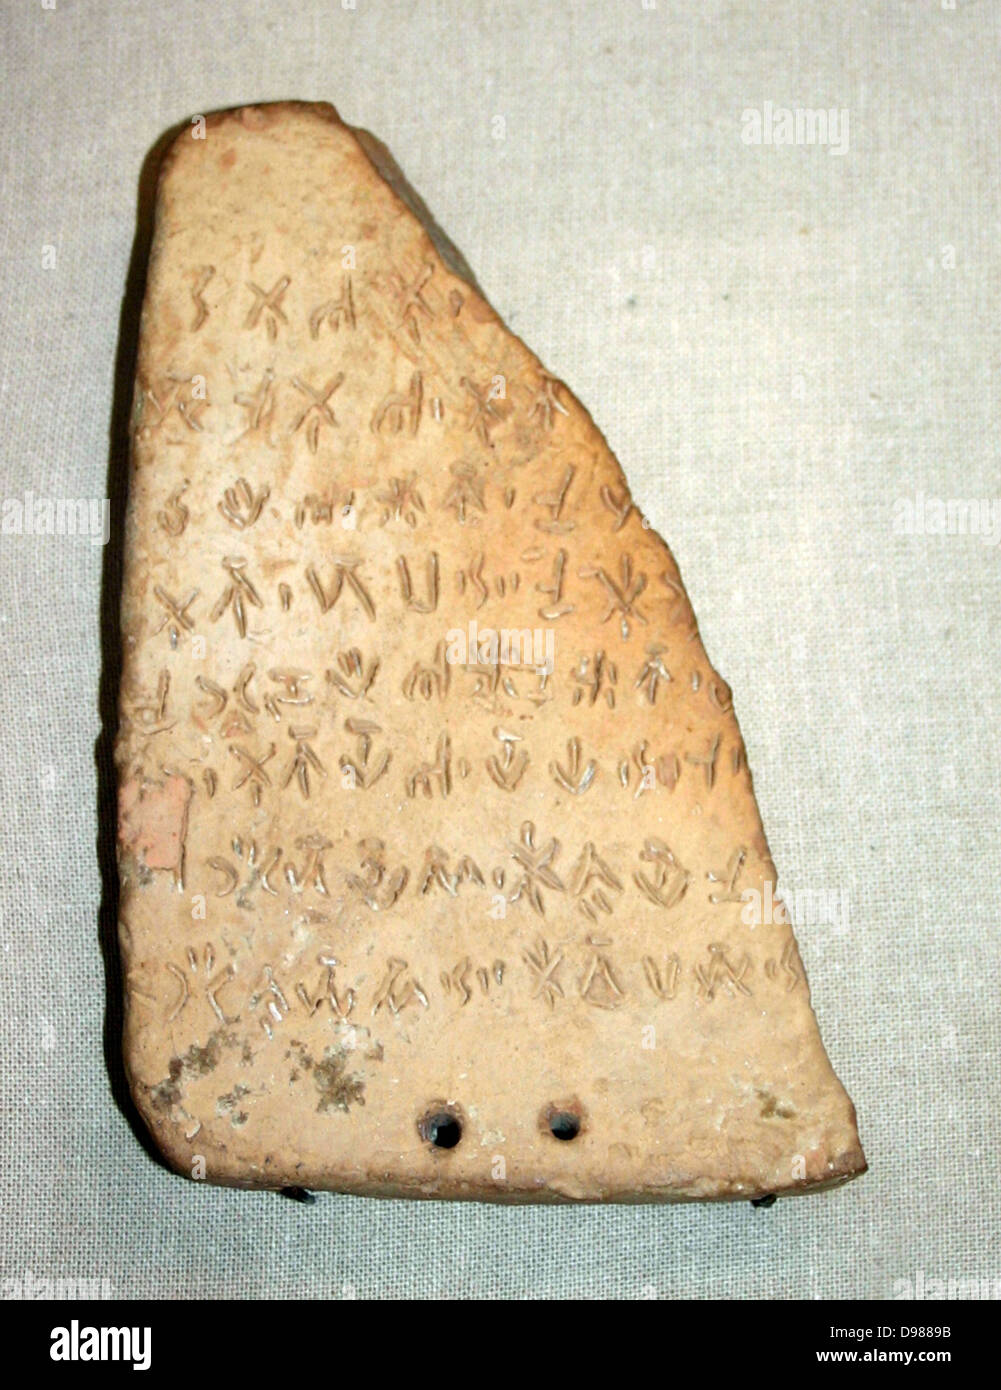 Clay tablet inscribed with Linear 'B' script. Minoan dated to 1400 BC, from Knossos. Crete. - Stock Image